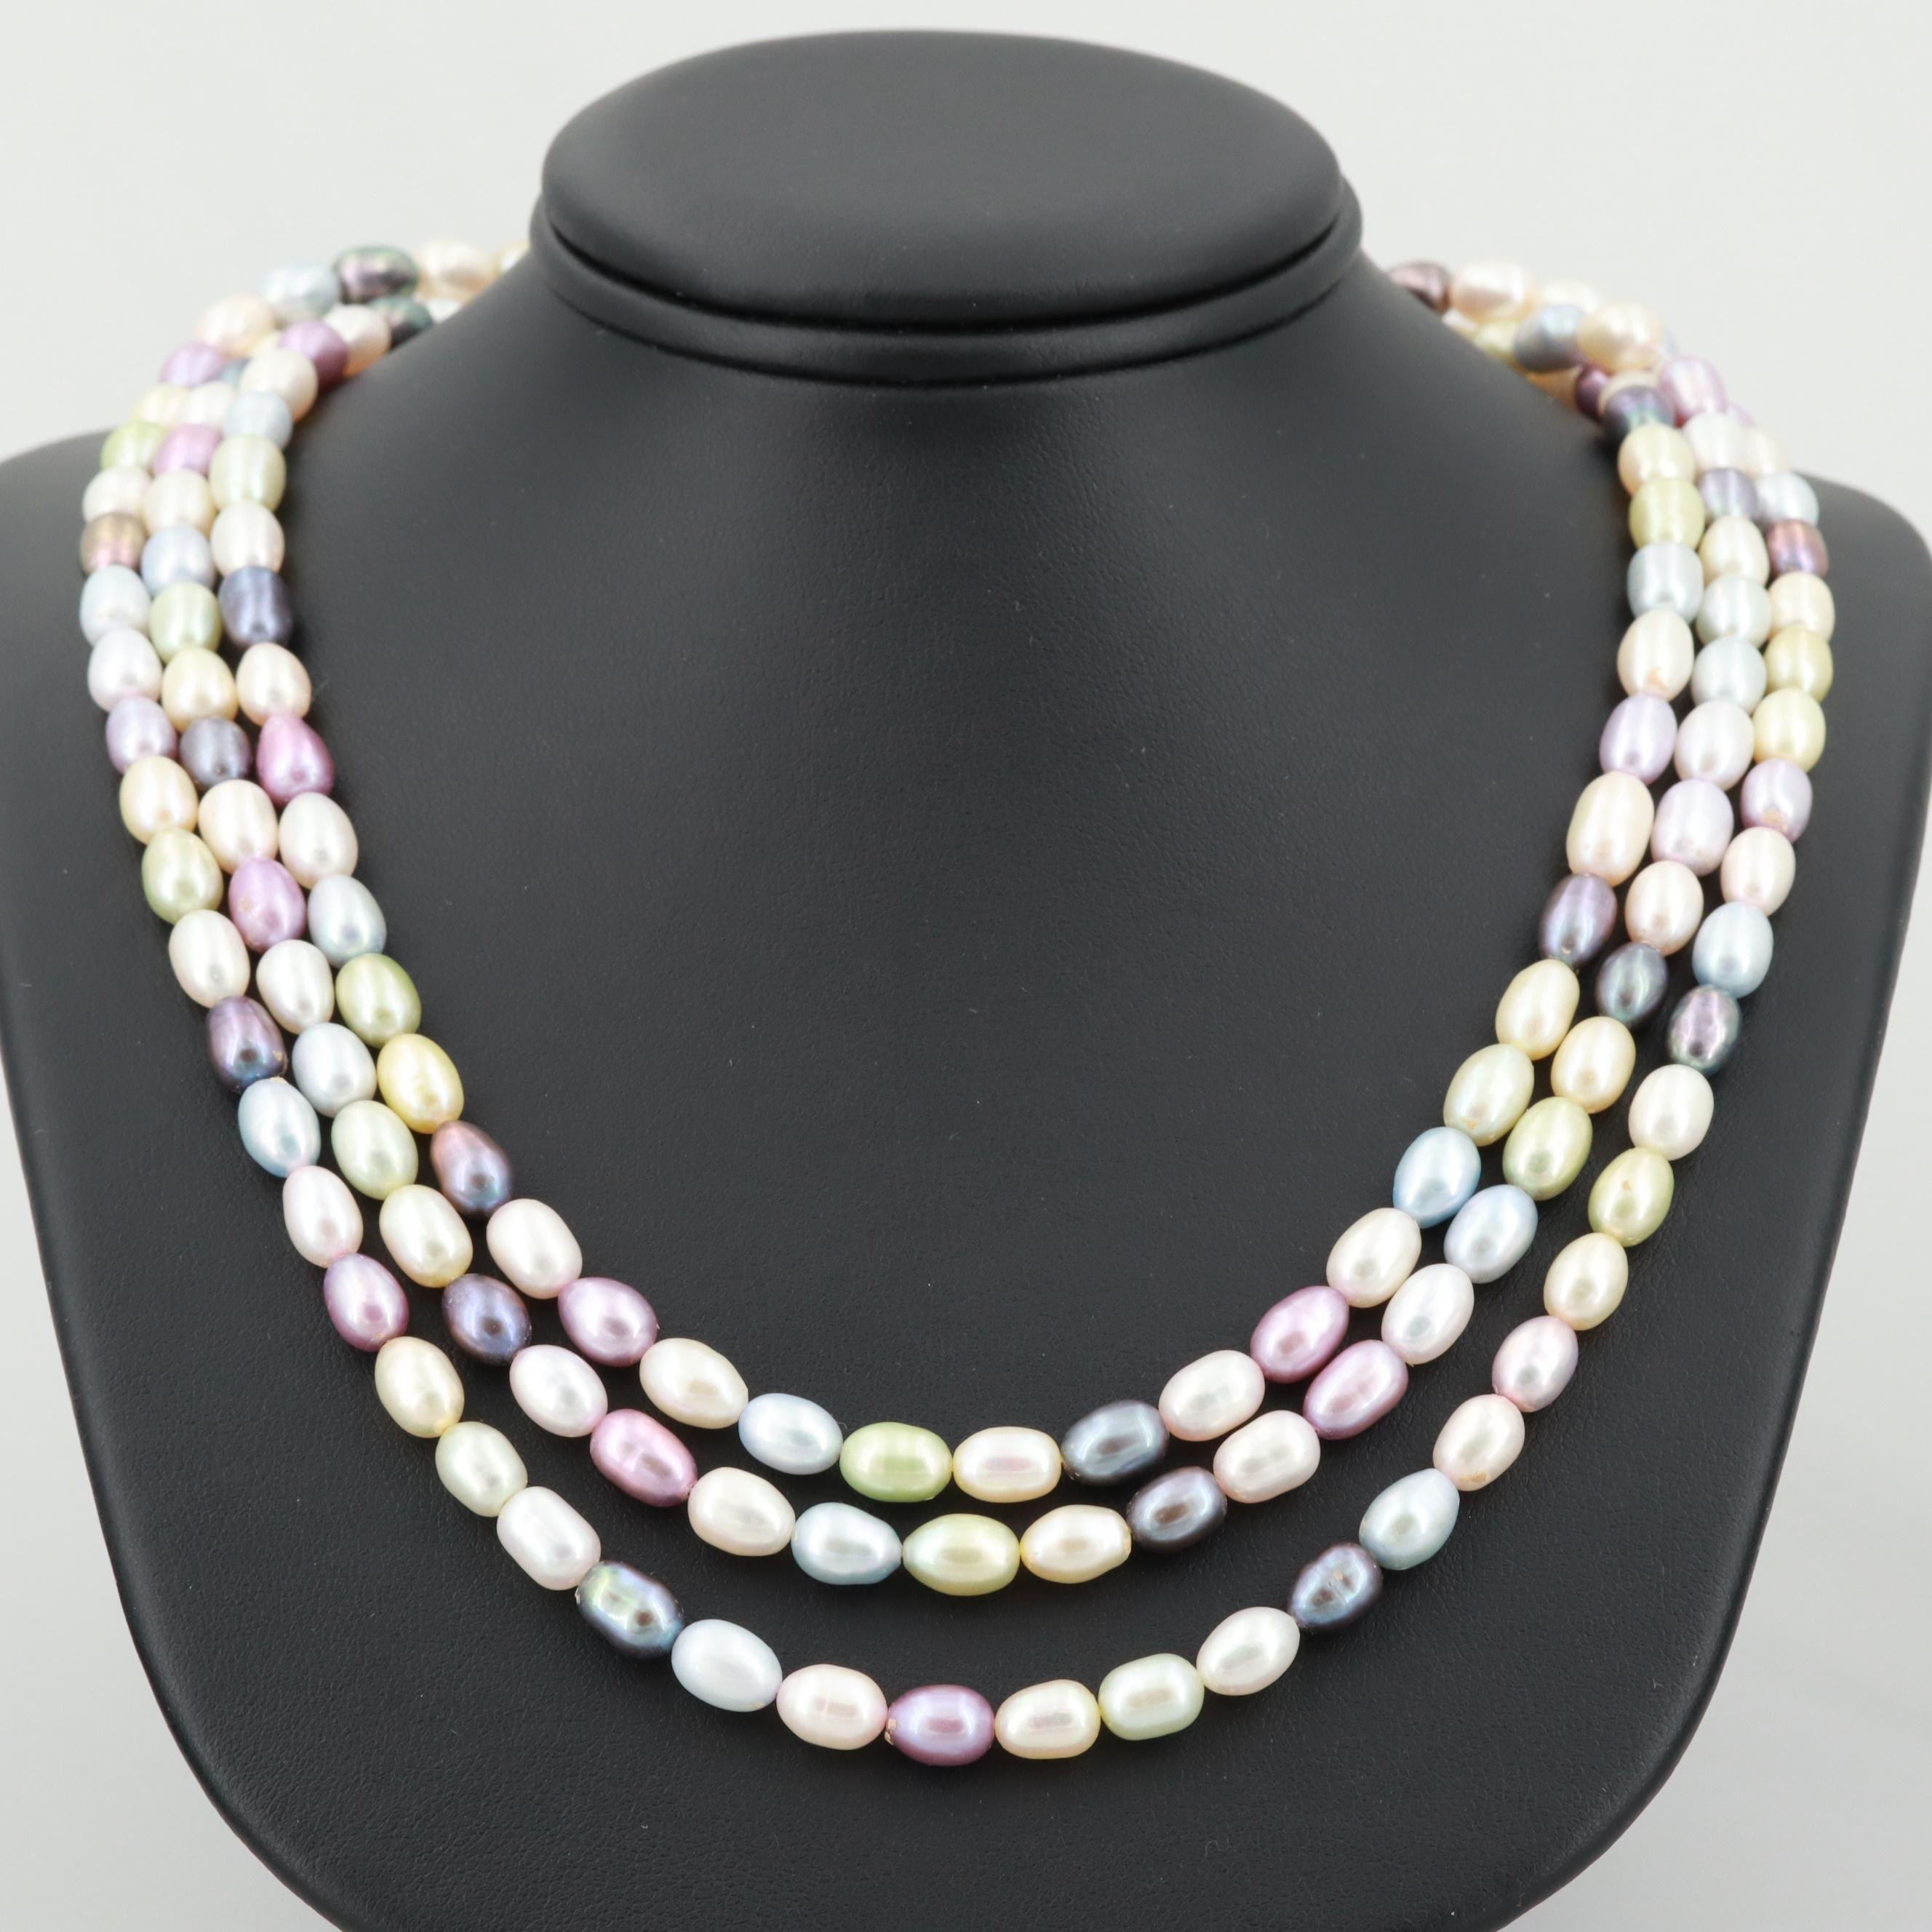 14K Yellow Gold Cultured Pearl Multi-Strand Beaded Necklace